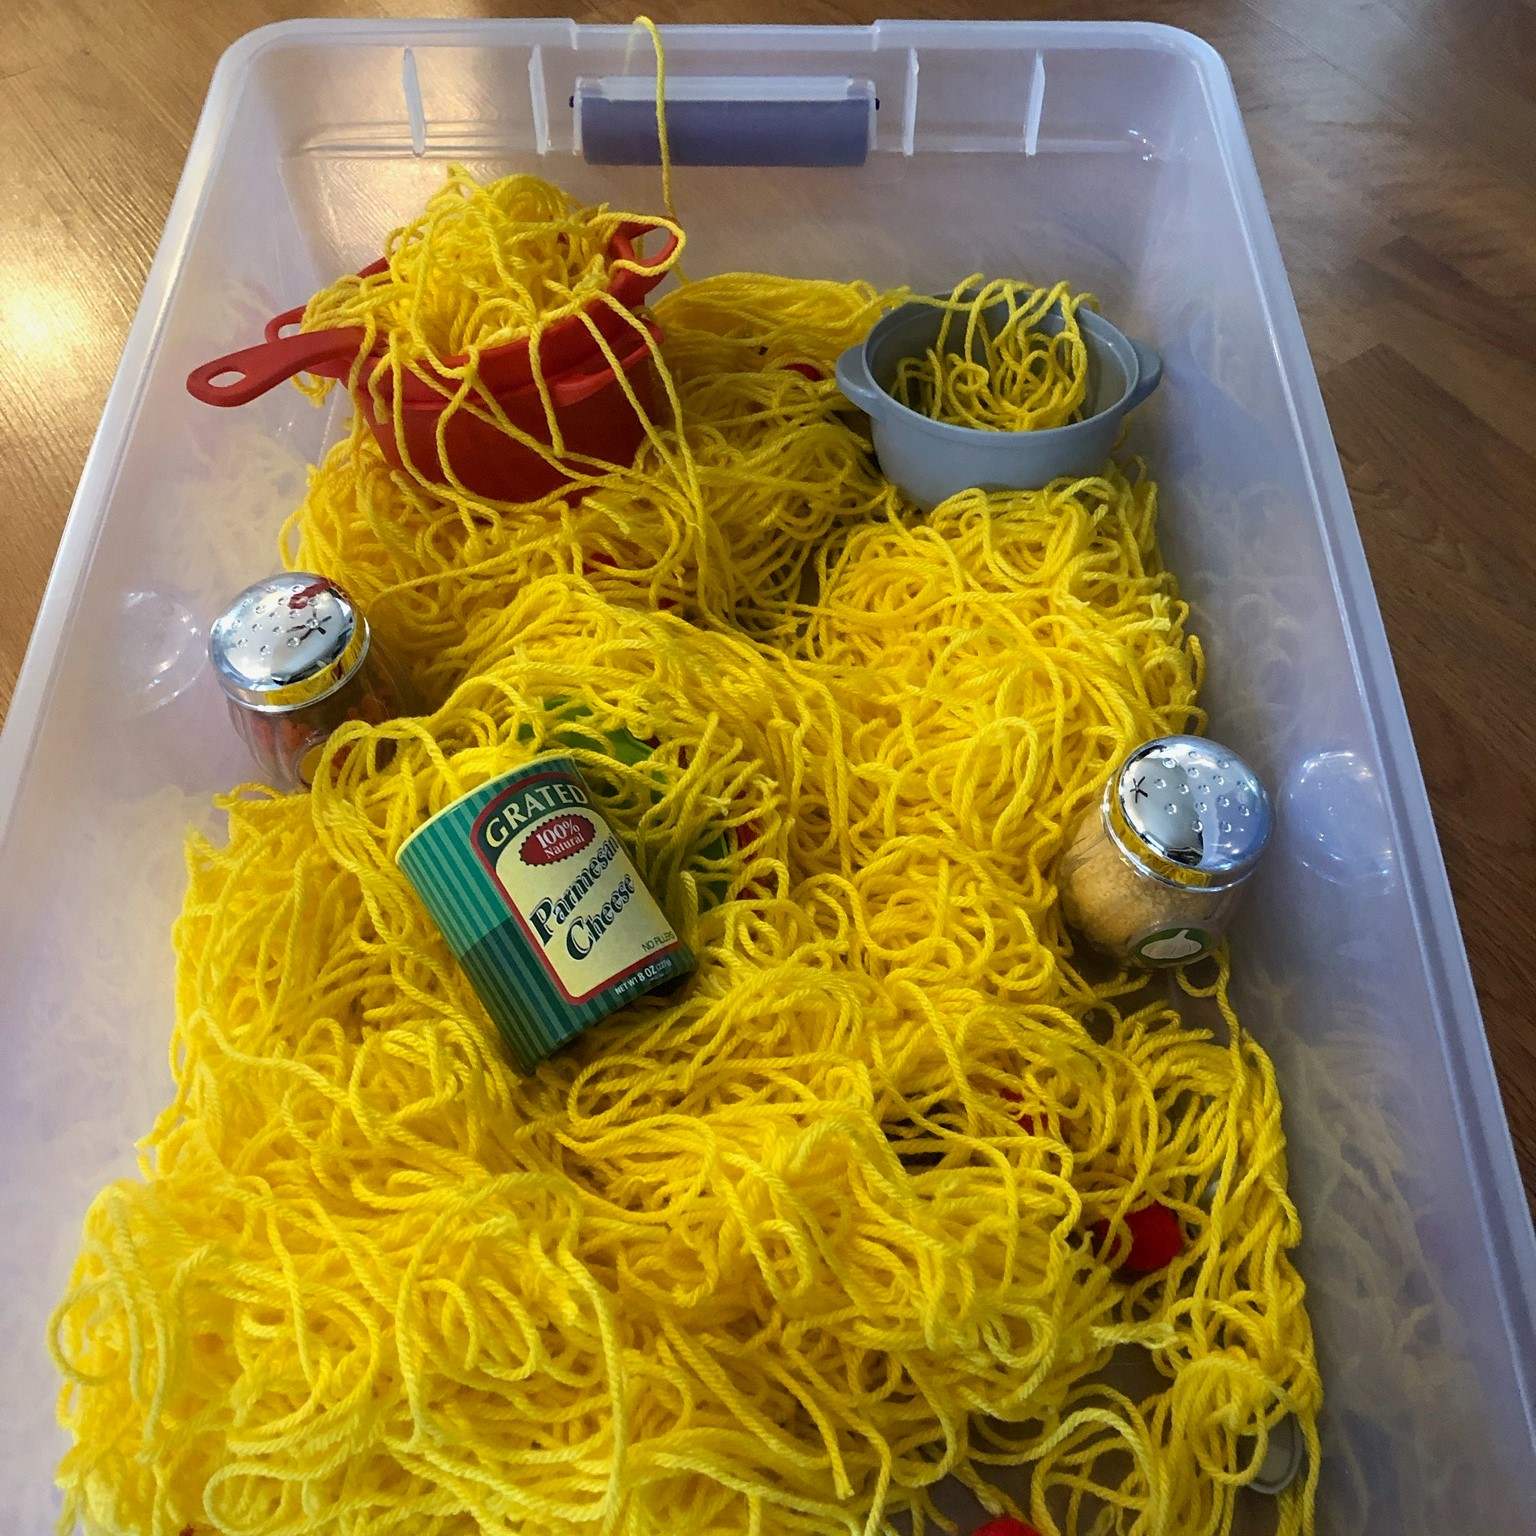 A sensory bin filled with yarn, cans, colander, and condiment shakers